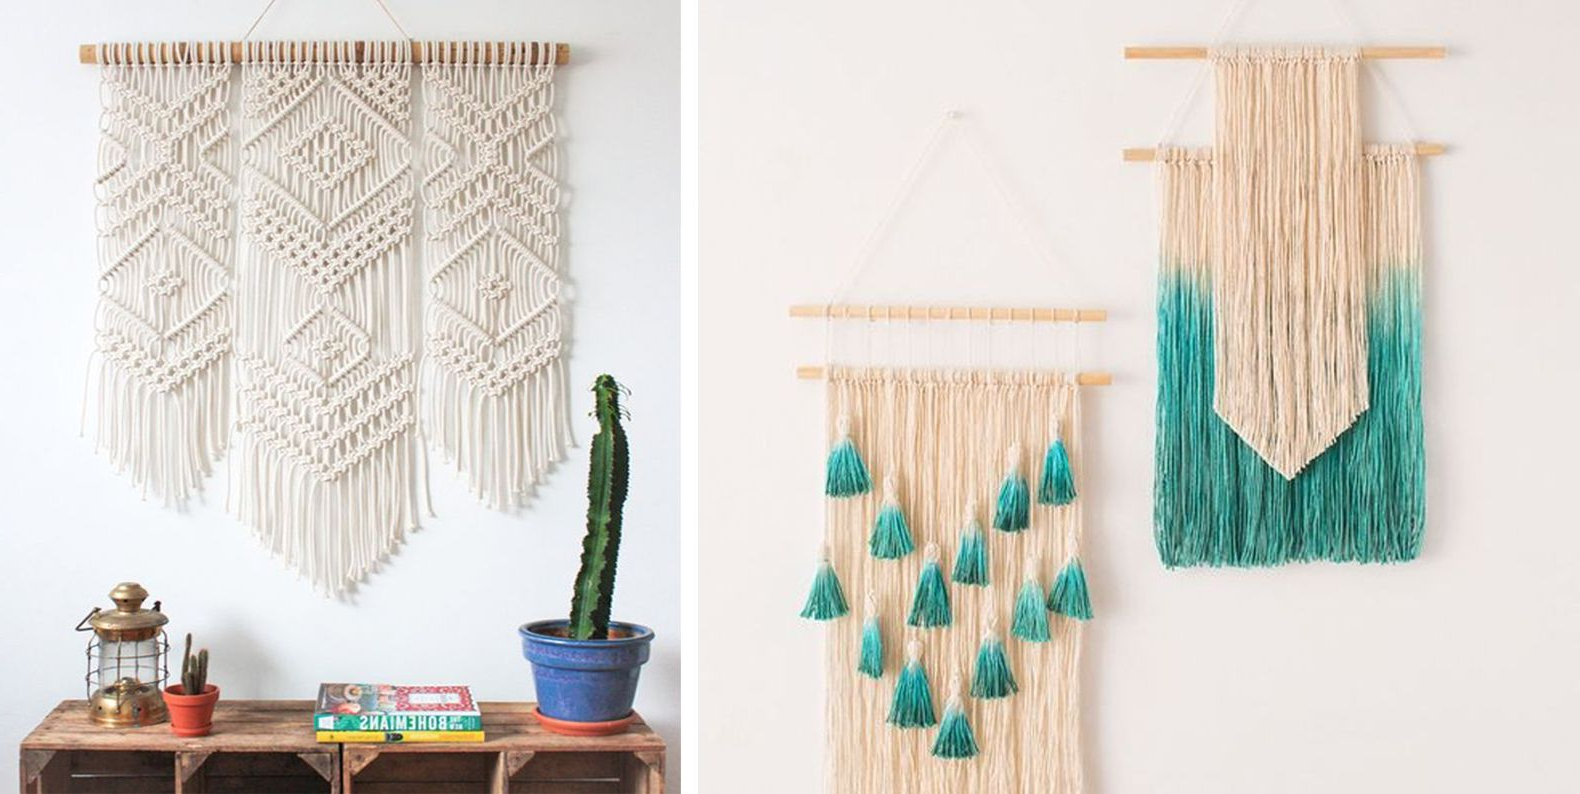 Preferred Blended Fabric Saber Wall Hangings With Rod Throughout Pin Em Etiquetas Para Regalo (View 18 of 20)